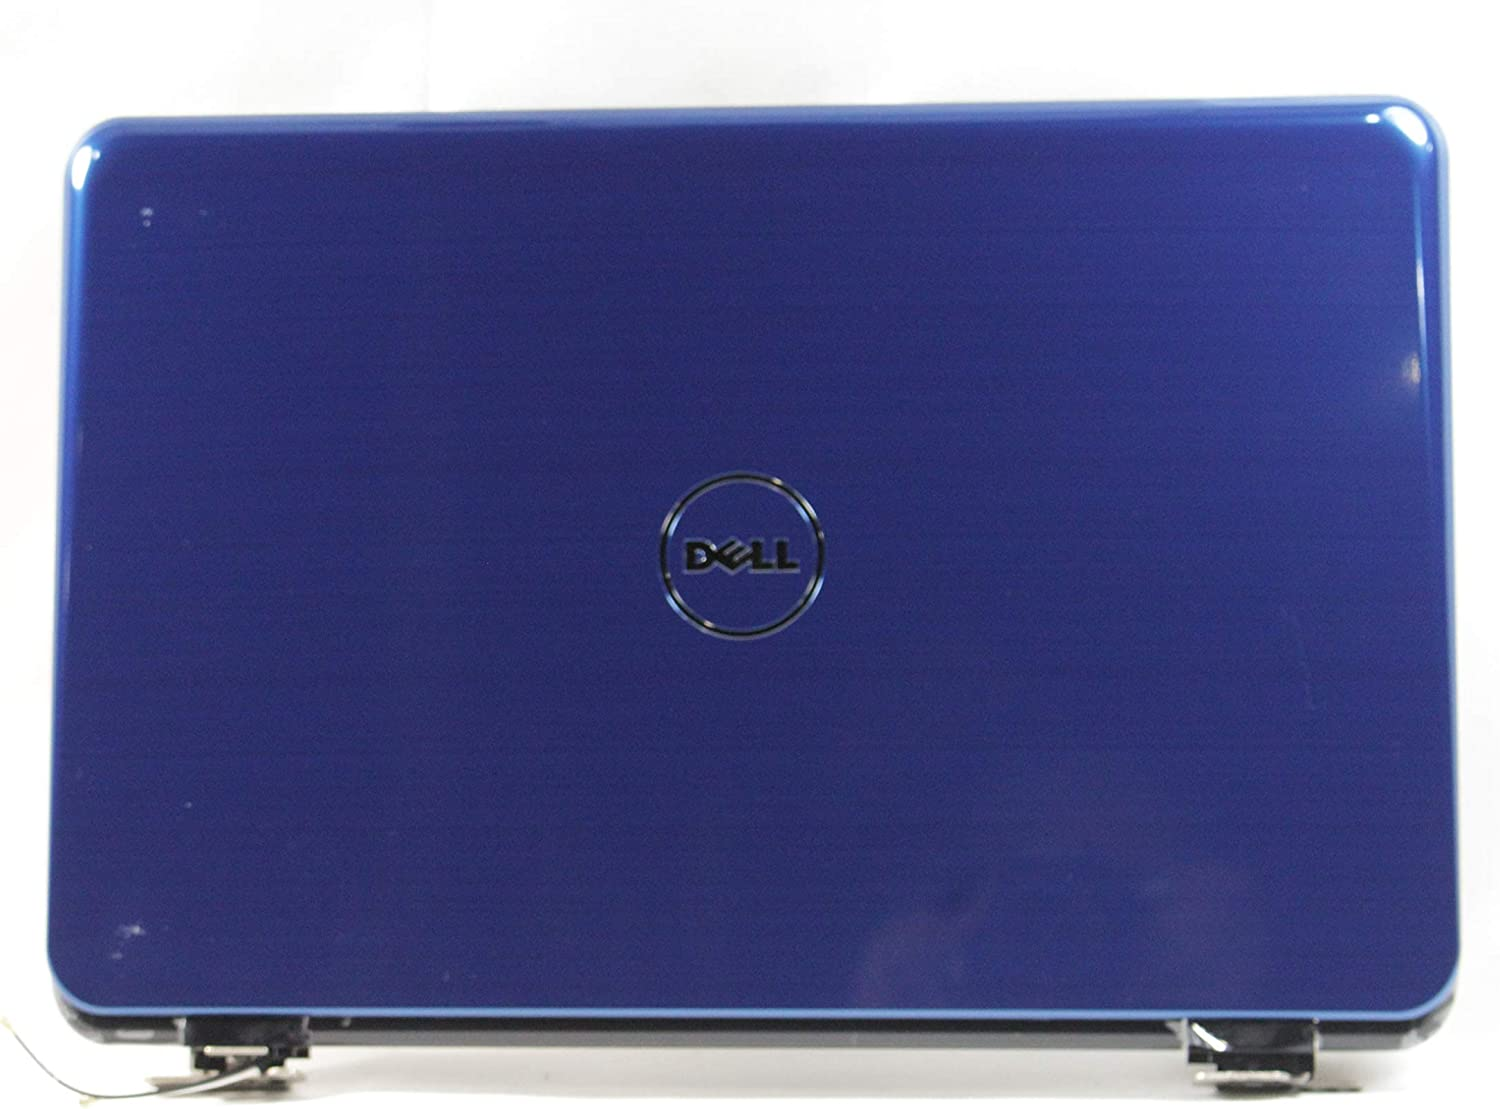 Dell Inspiron N4010 Blue Lcd Back Cover With Hinges - KXDFR Grade A